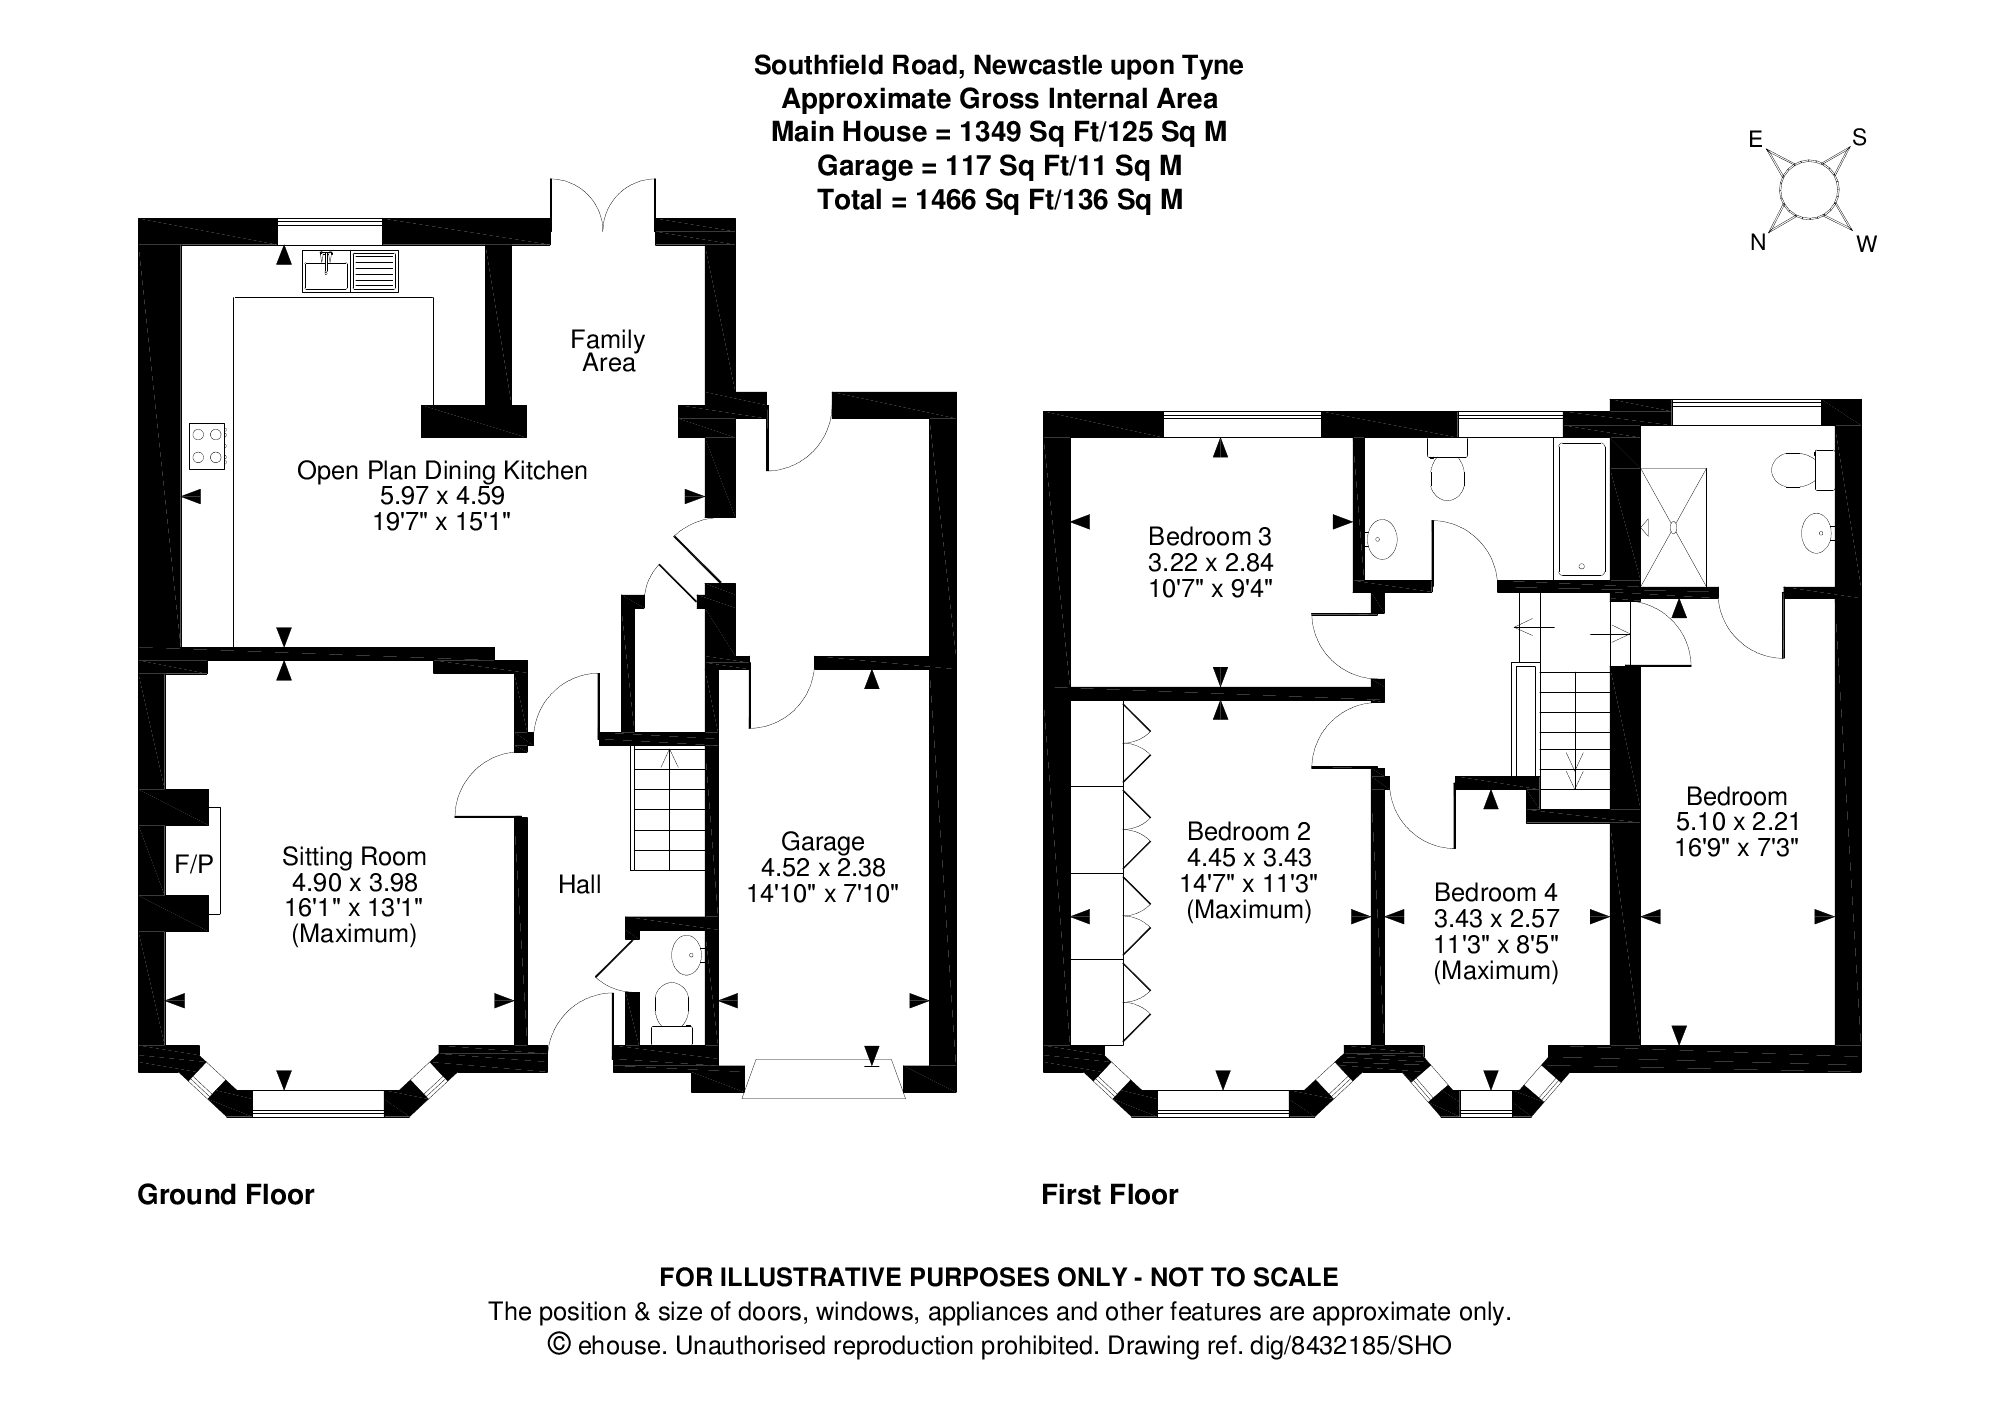 Floorplans for Southfield Road, Benton, Newcastle Upon Tyne, NE12